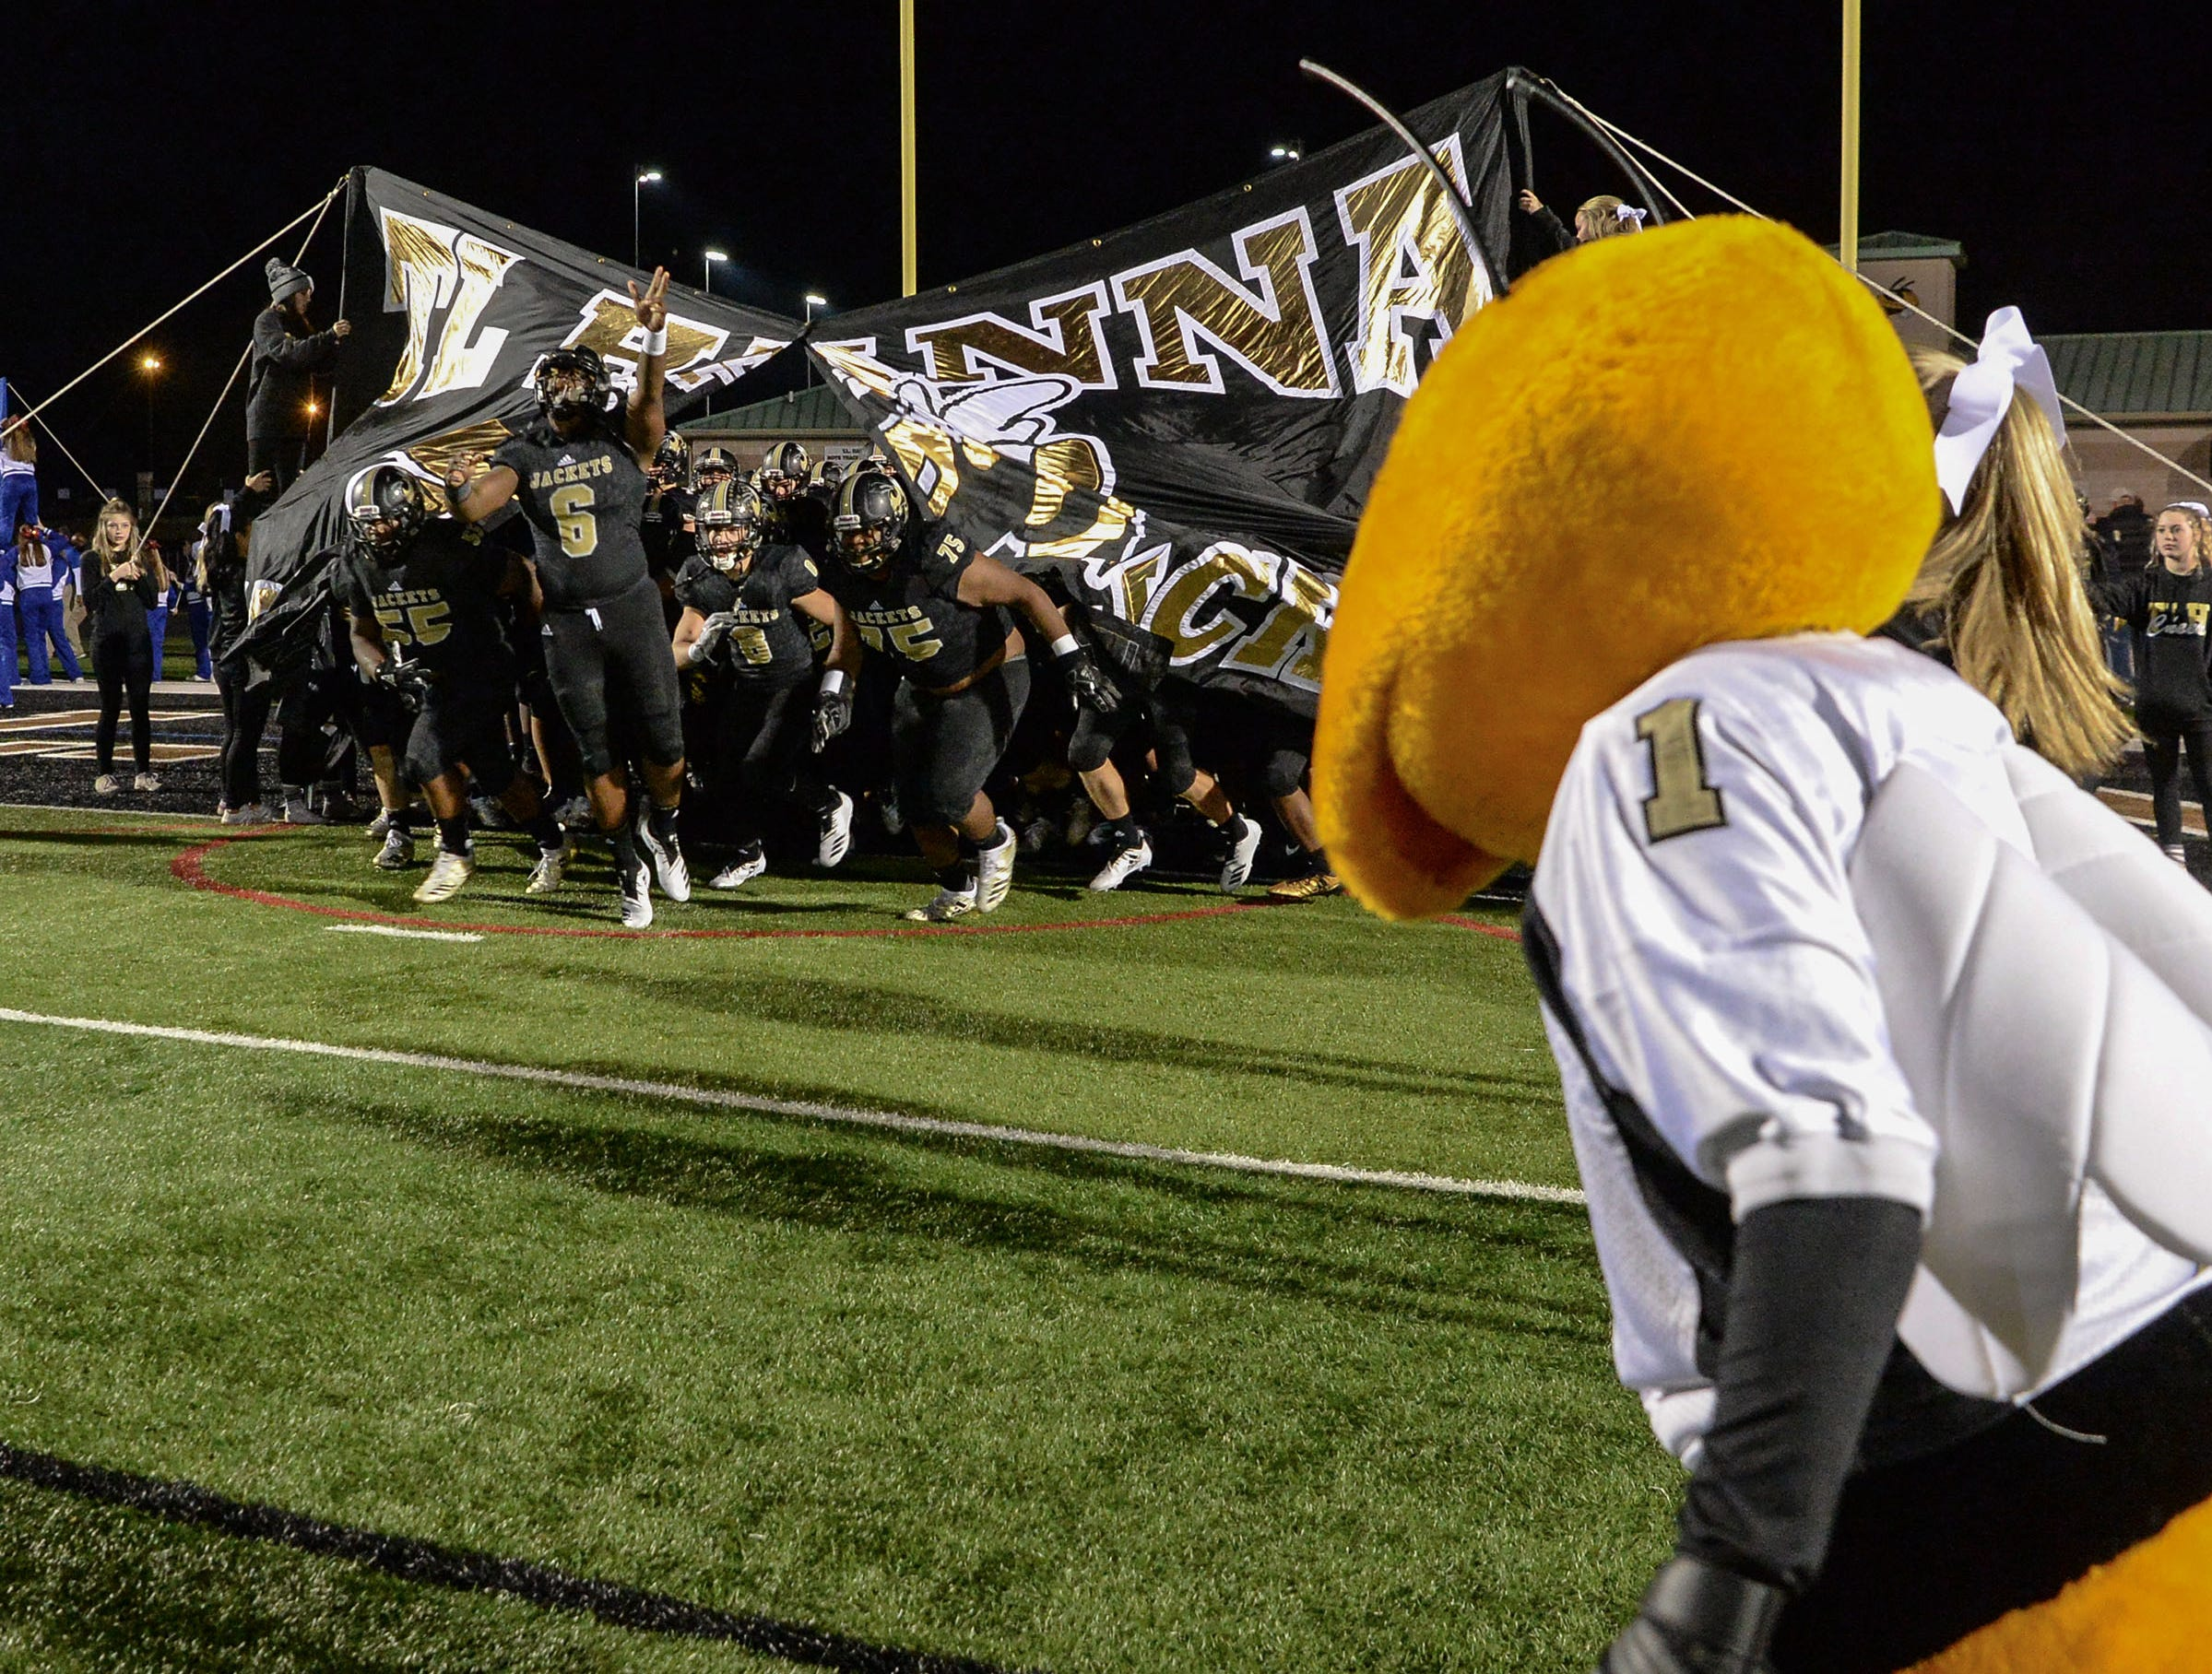 TL Hanna High School players break through a banner before the kickoff with Byrnes in the Class AAAAA state playoffs at TL Hanna High School in Anderson on Friday, November 30, 2018.